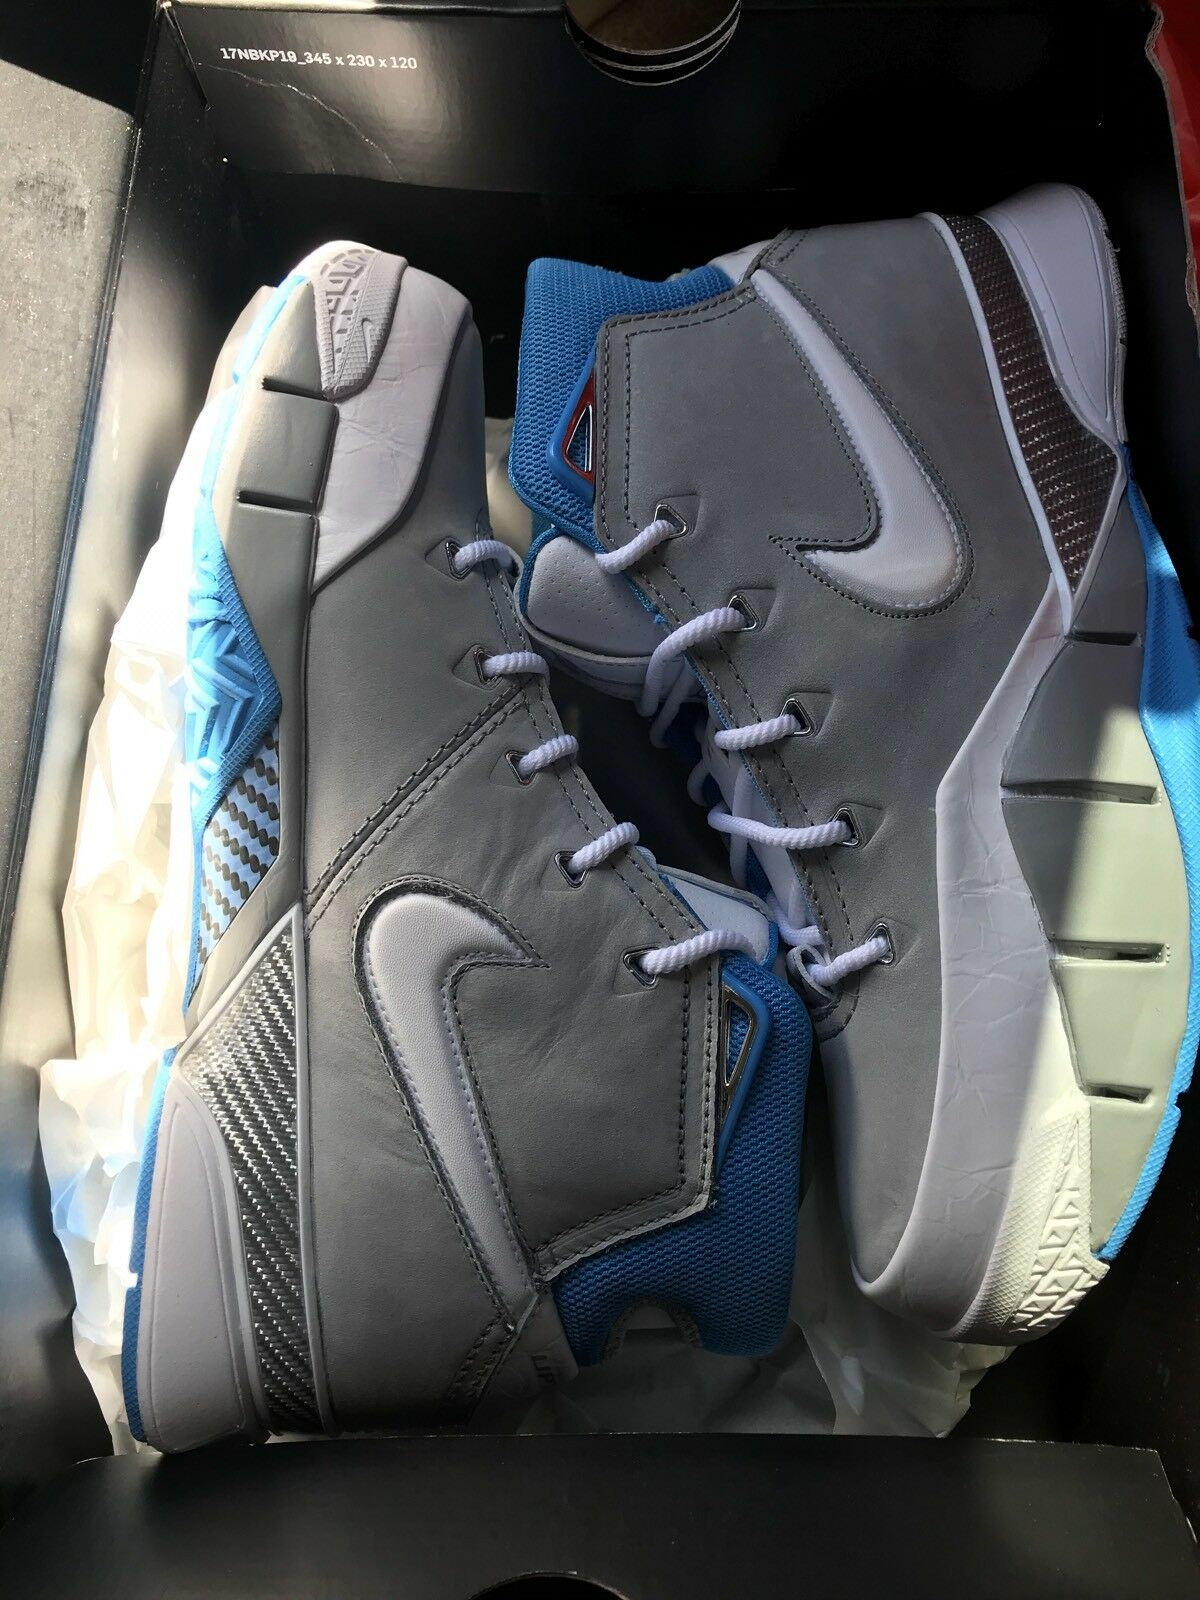 low priced 20148 43b76 2018 - Nike Kobe Bryant 1 Protro MPLS MPLS MPLS Wolf Grey White University  Blue Size